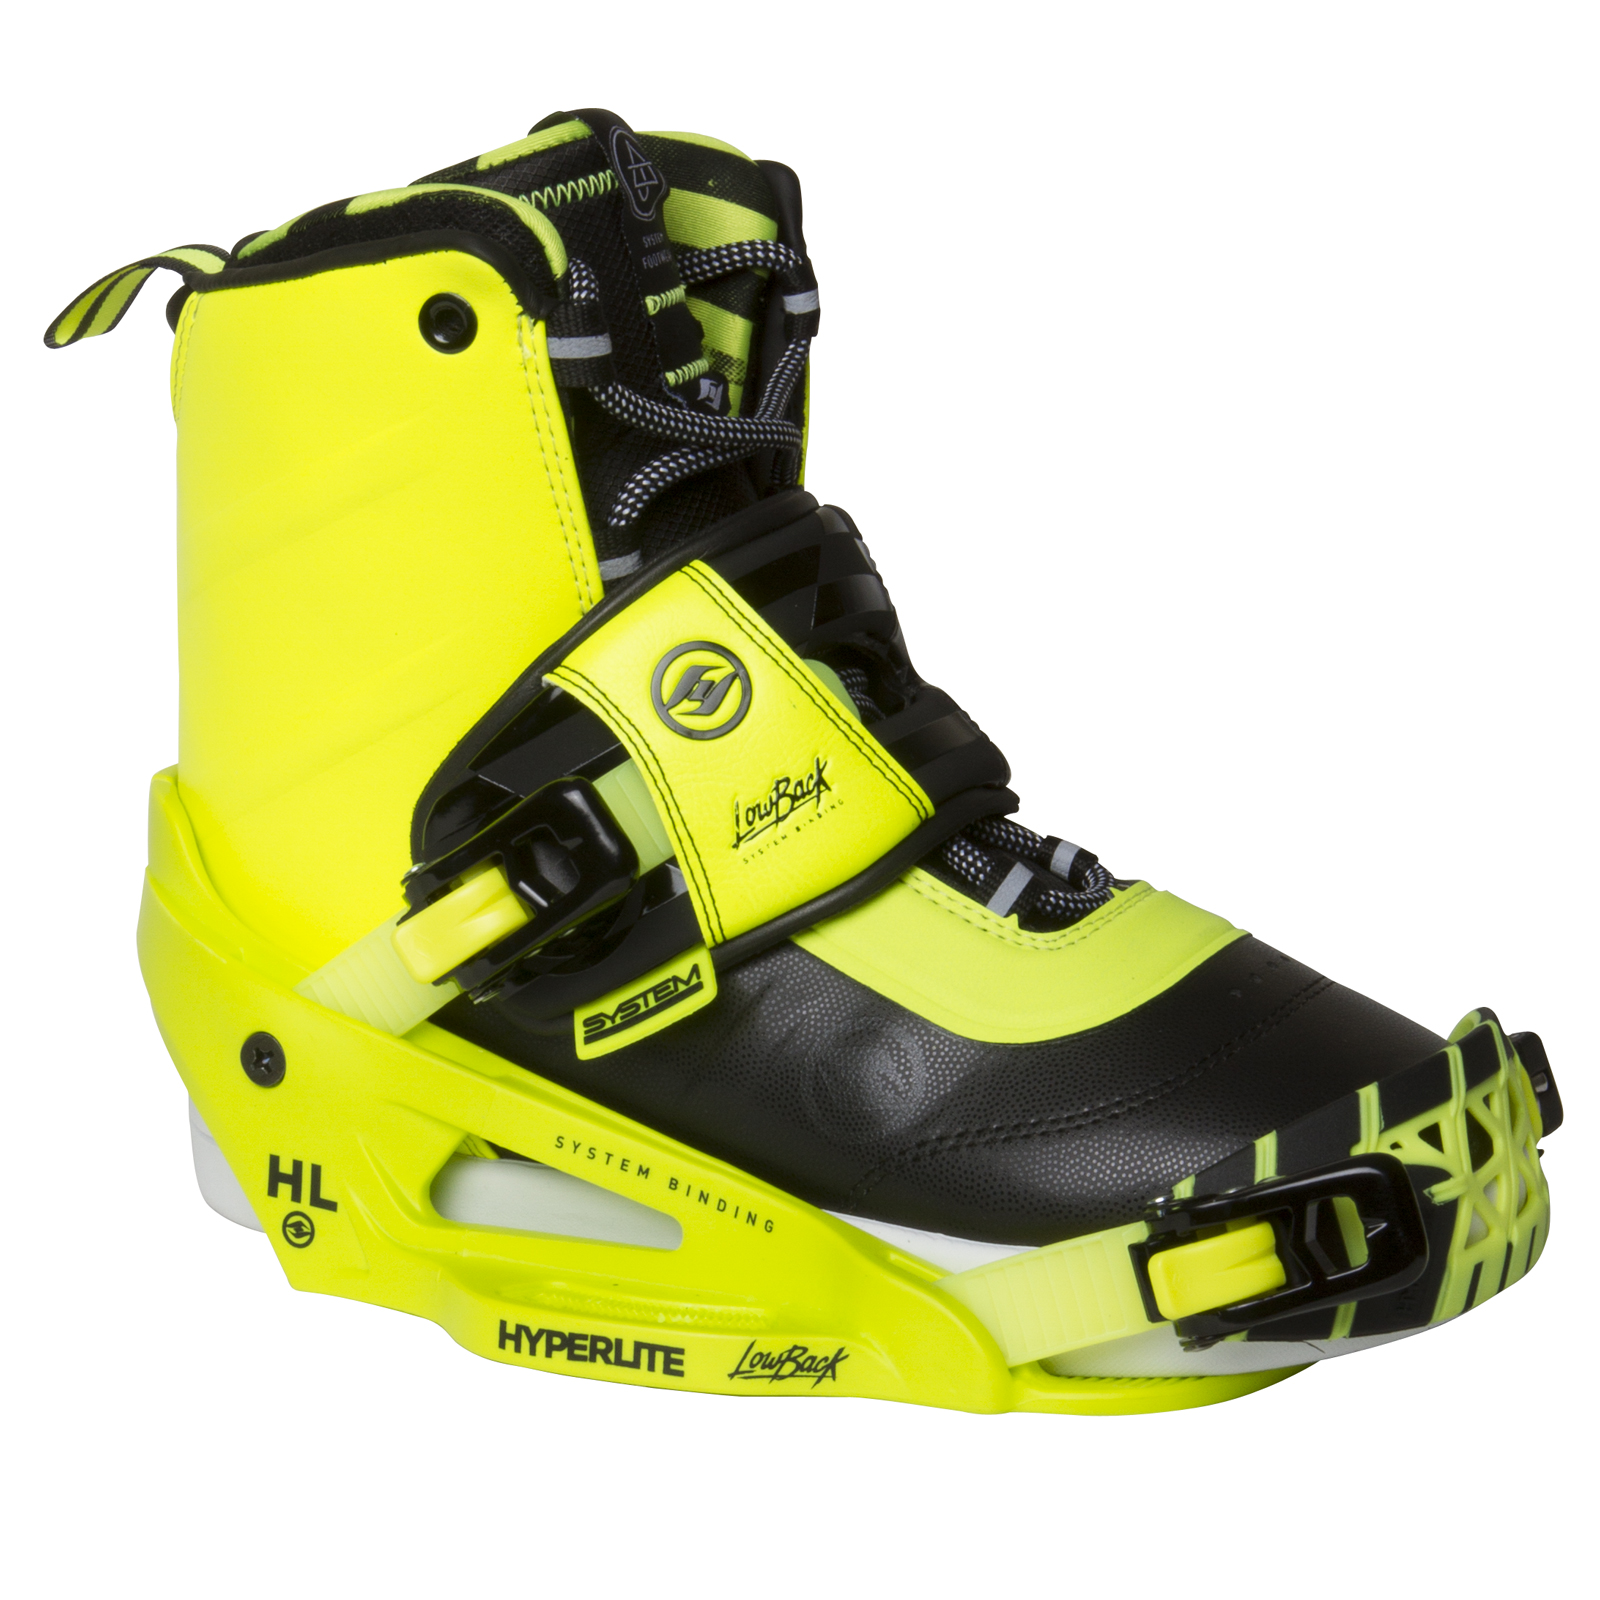 AJ SYSTEM BOOT - YELLOW W/SYSTEM LOWBACK YELLOW HYPERLITE 2017